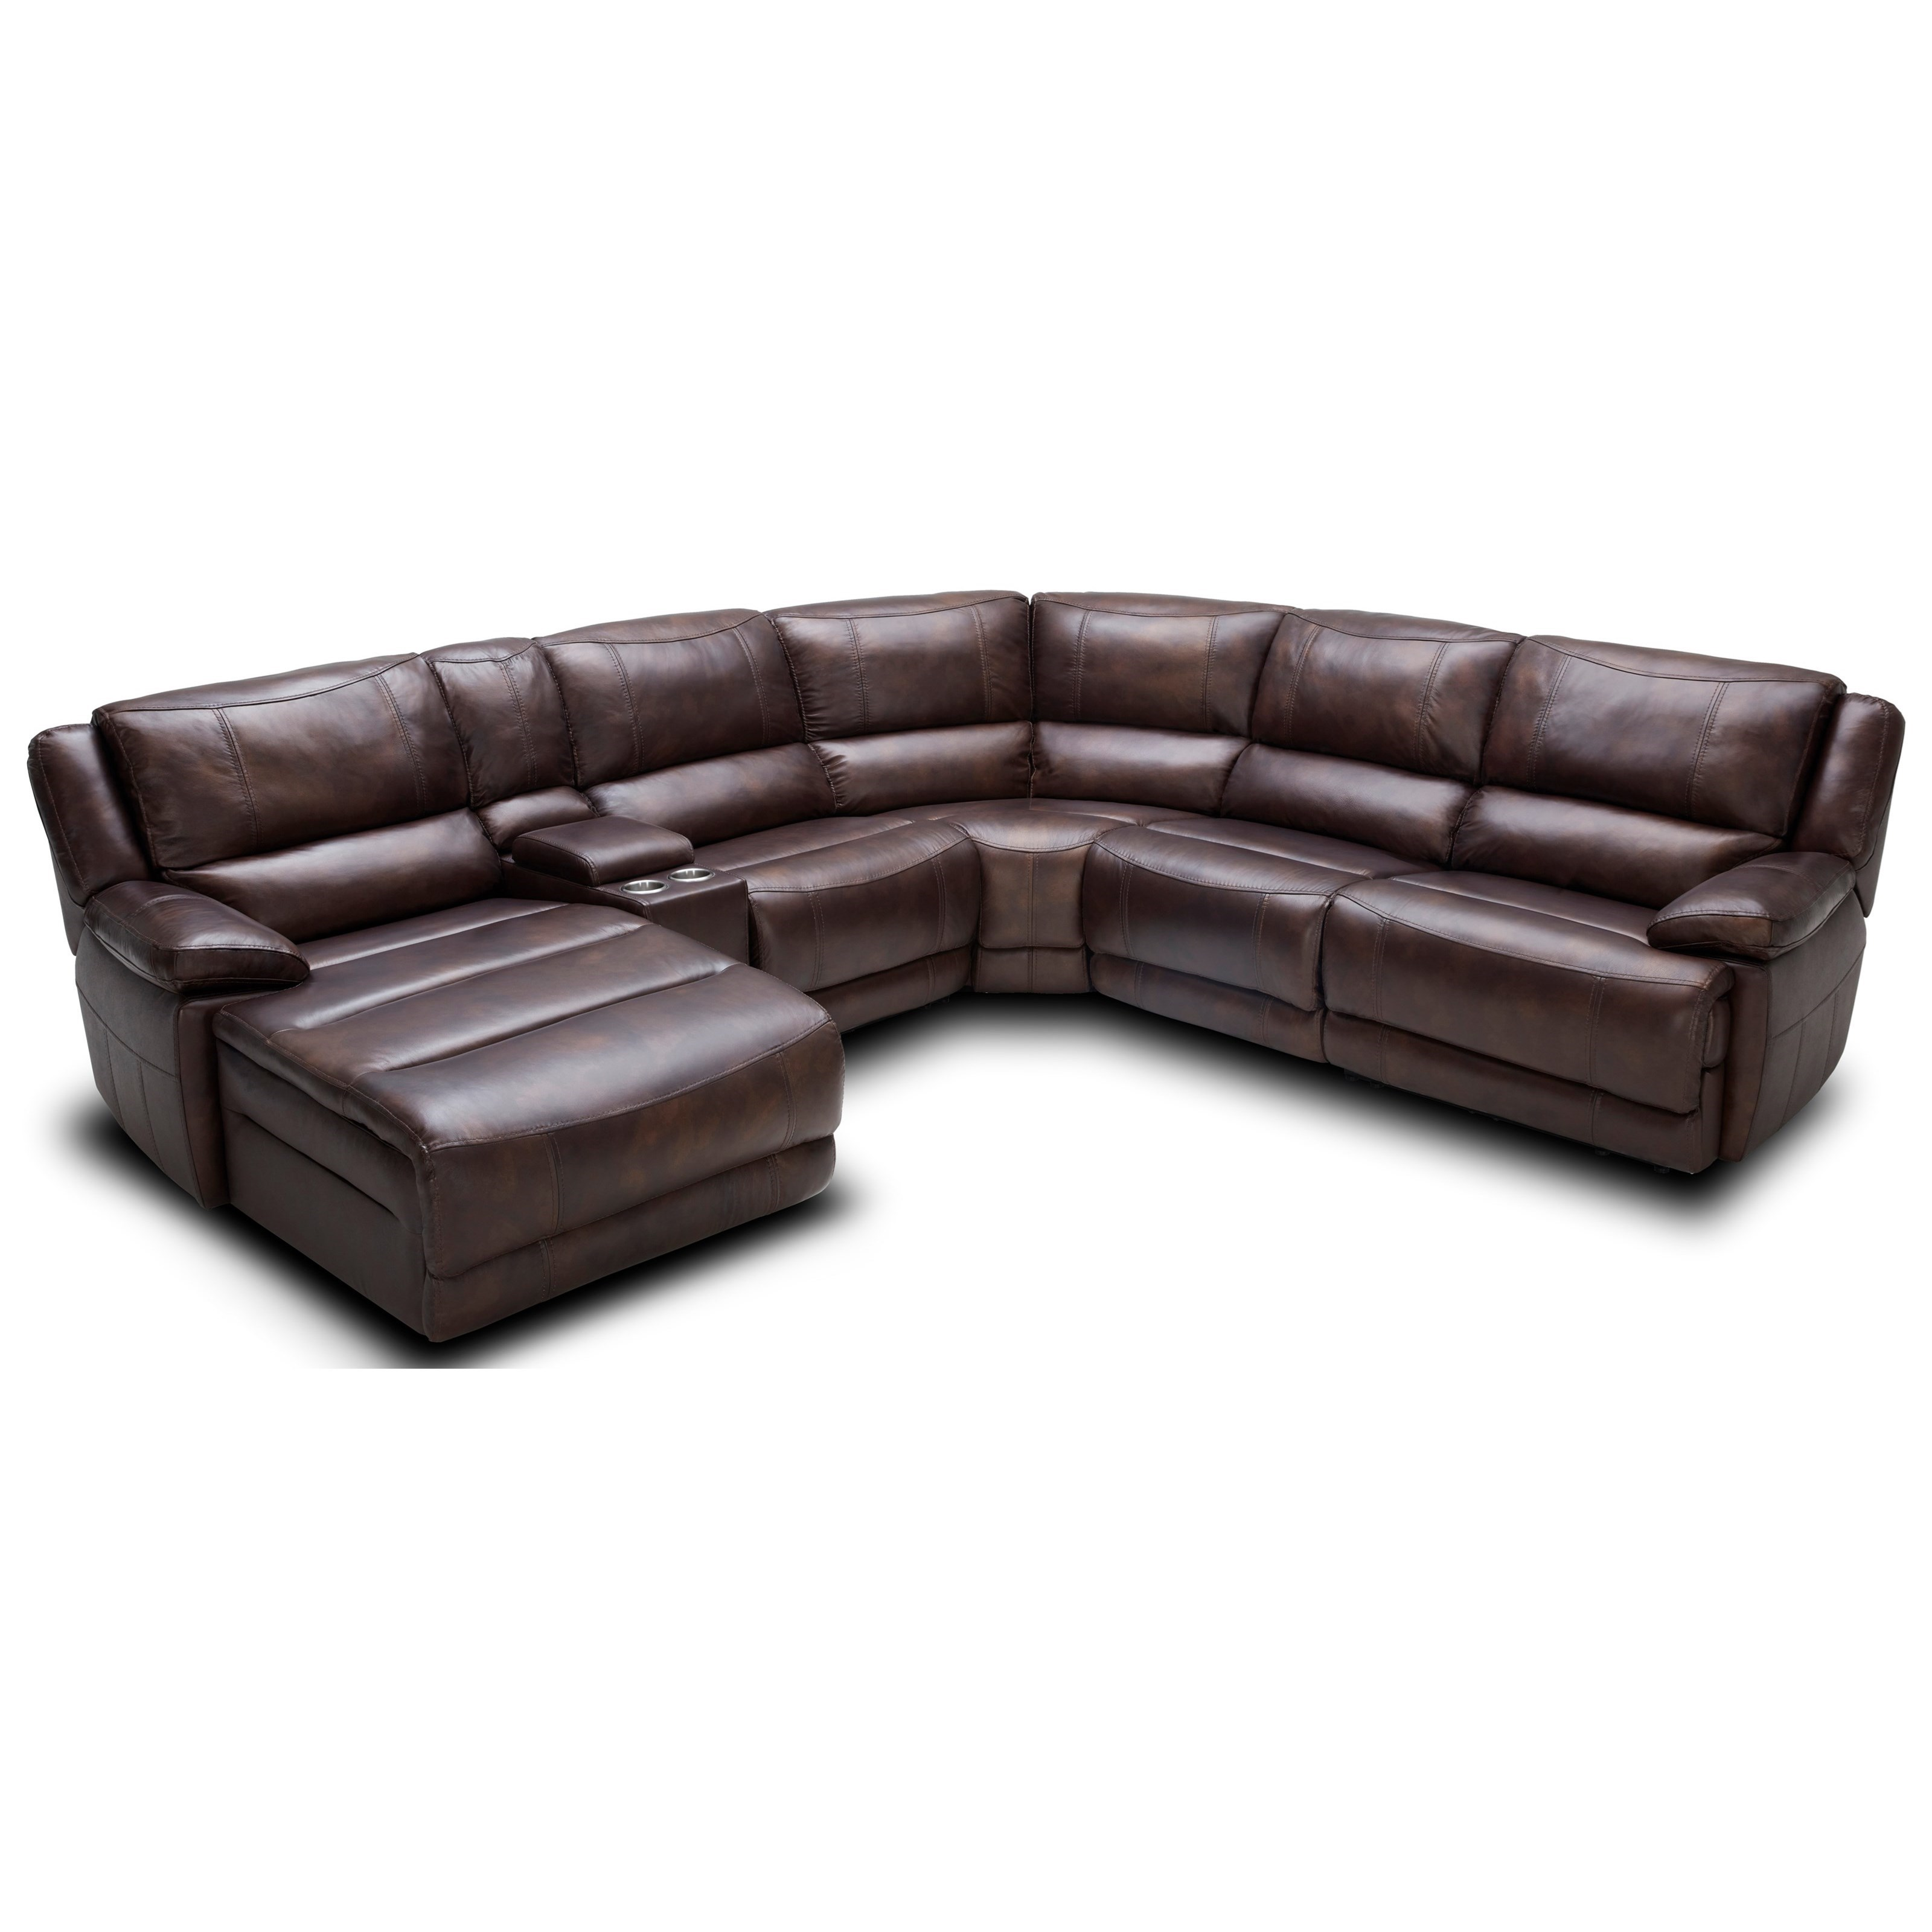 Kuka Home KM0286 Pc Reclining Sectional Sofa  Recliner With Cup Holder And Storage L45